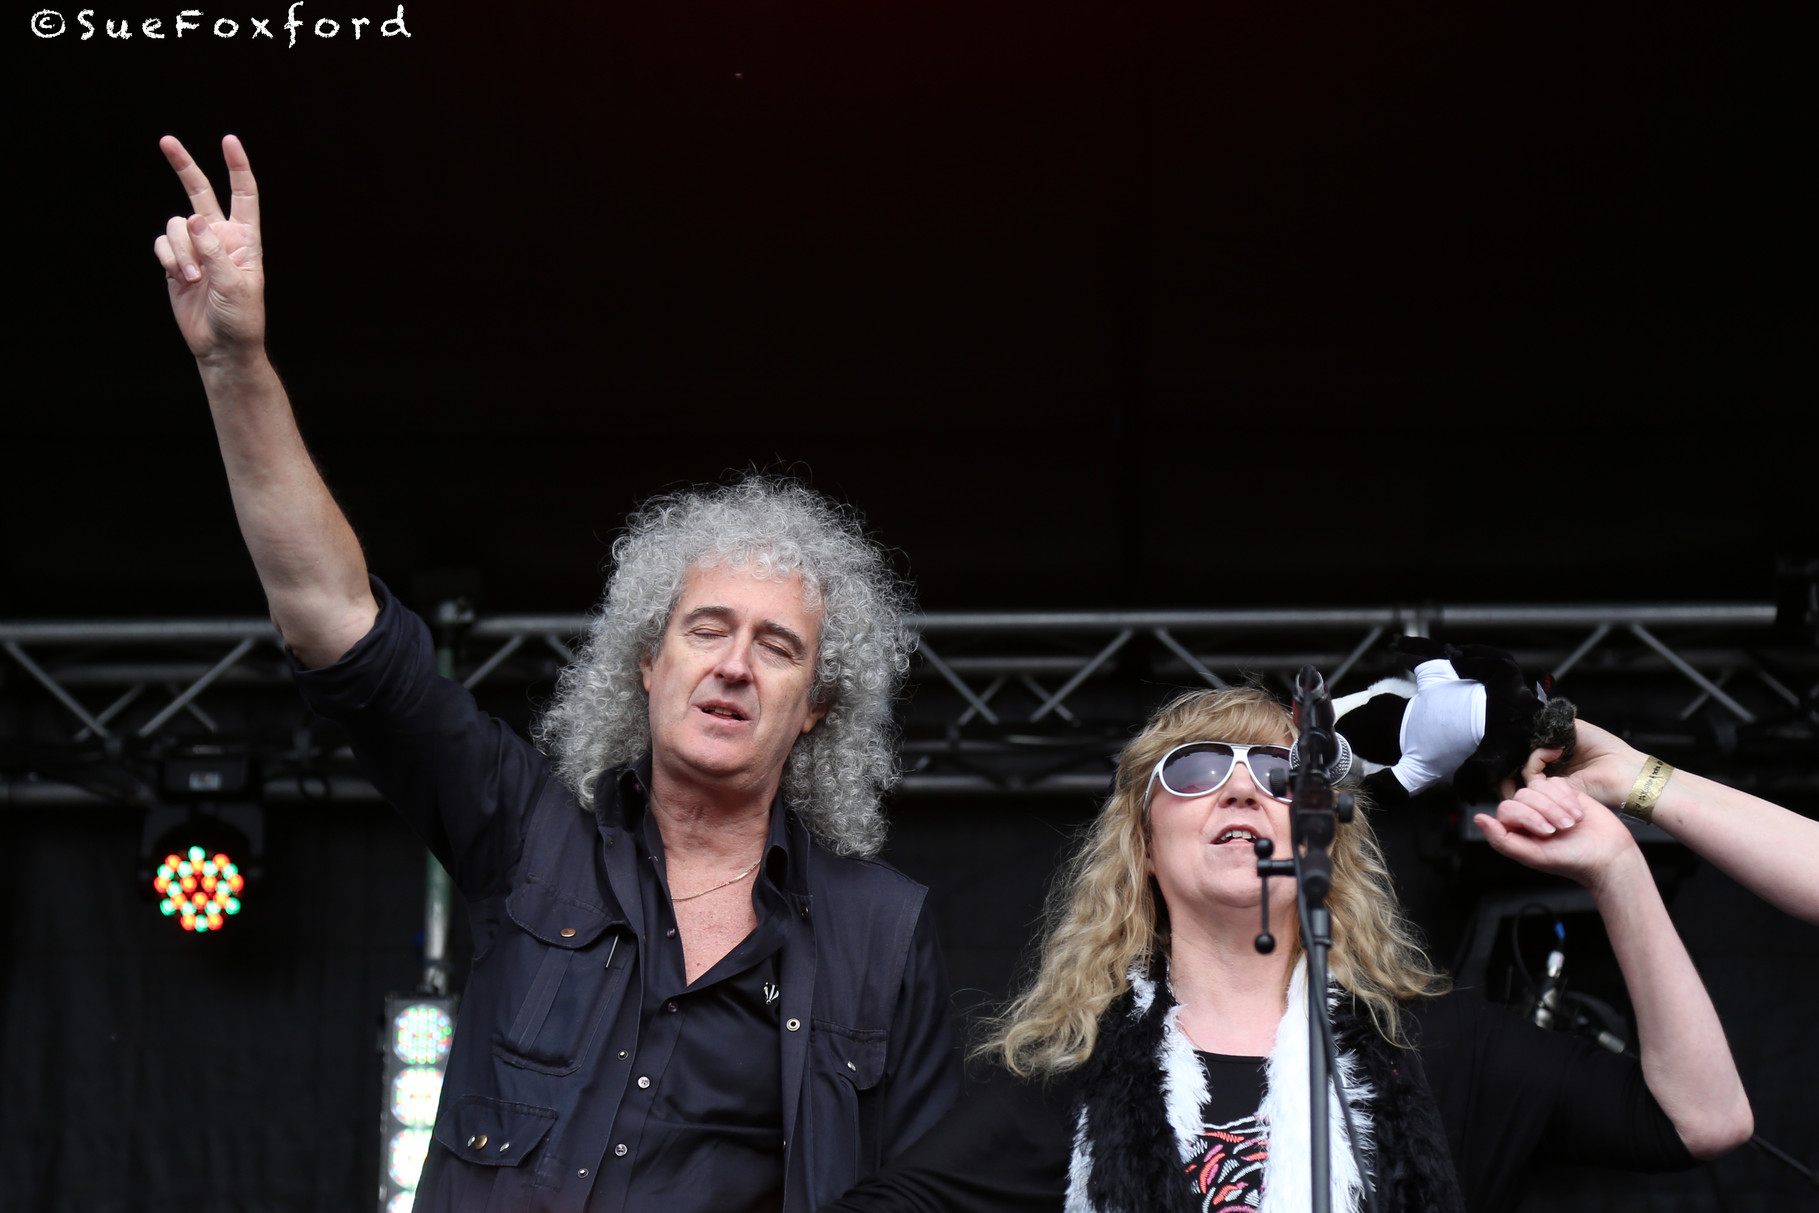 Brian May, Shirley Higton  - @SueFoxford